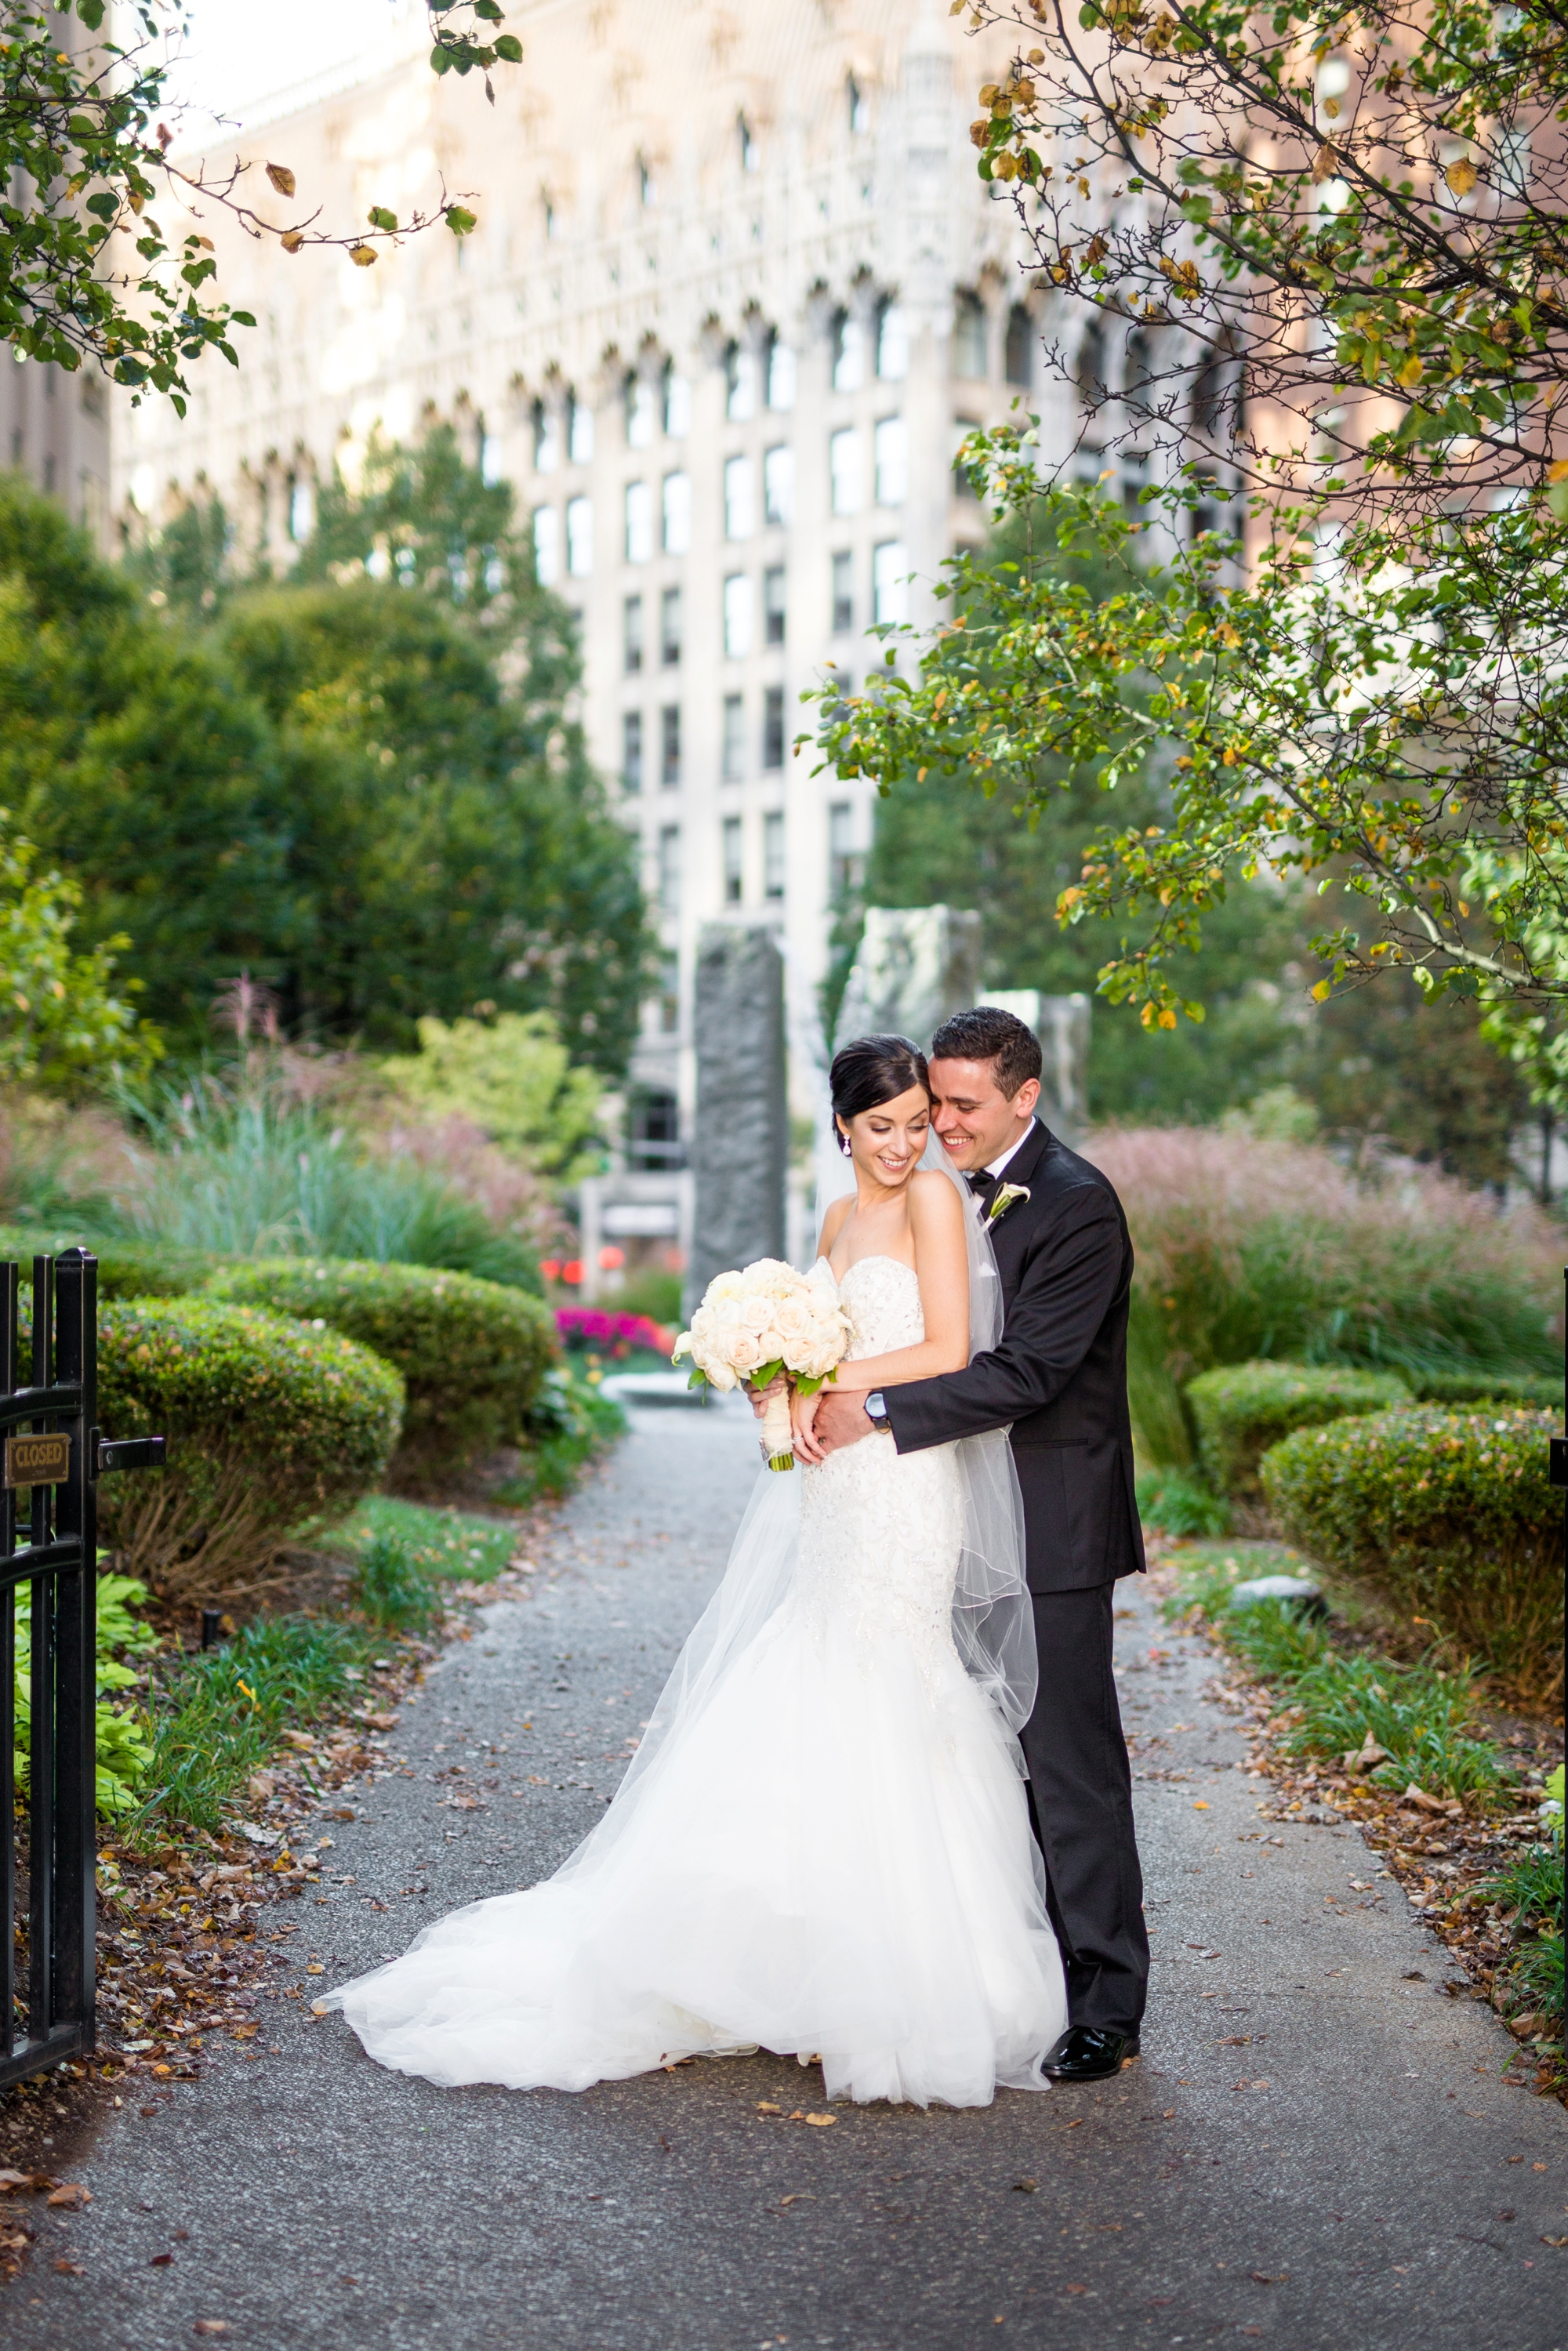 embassy suites downtown pittsburgh wedding photos, embassy suites downtown pittsburgh wedding pictures, downtown pittsburgh wedding venues, downtown pittsburgh wedding photos